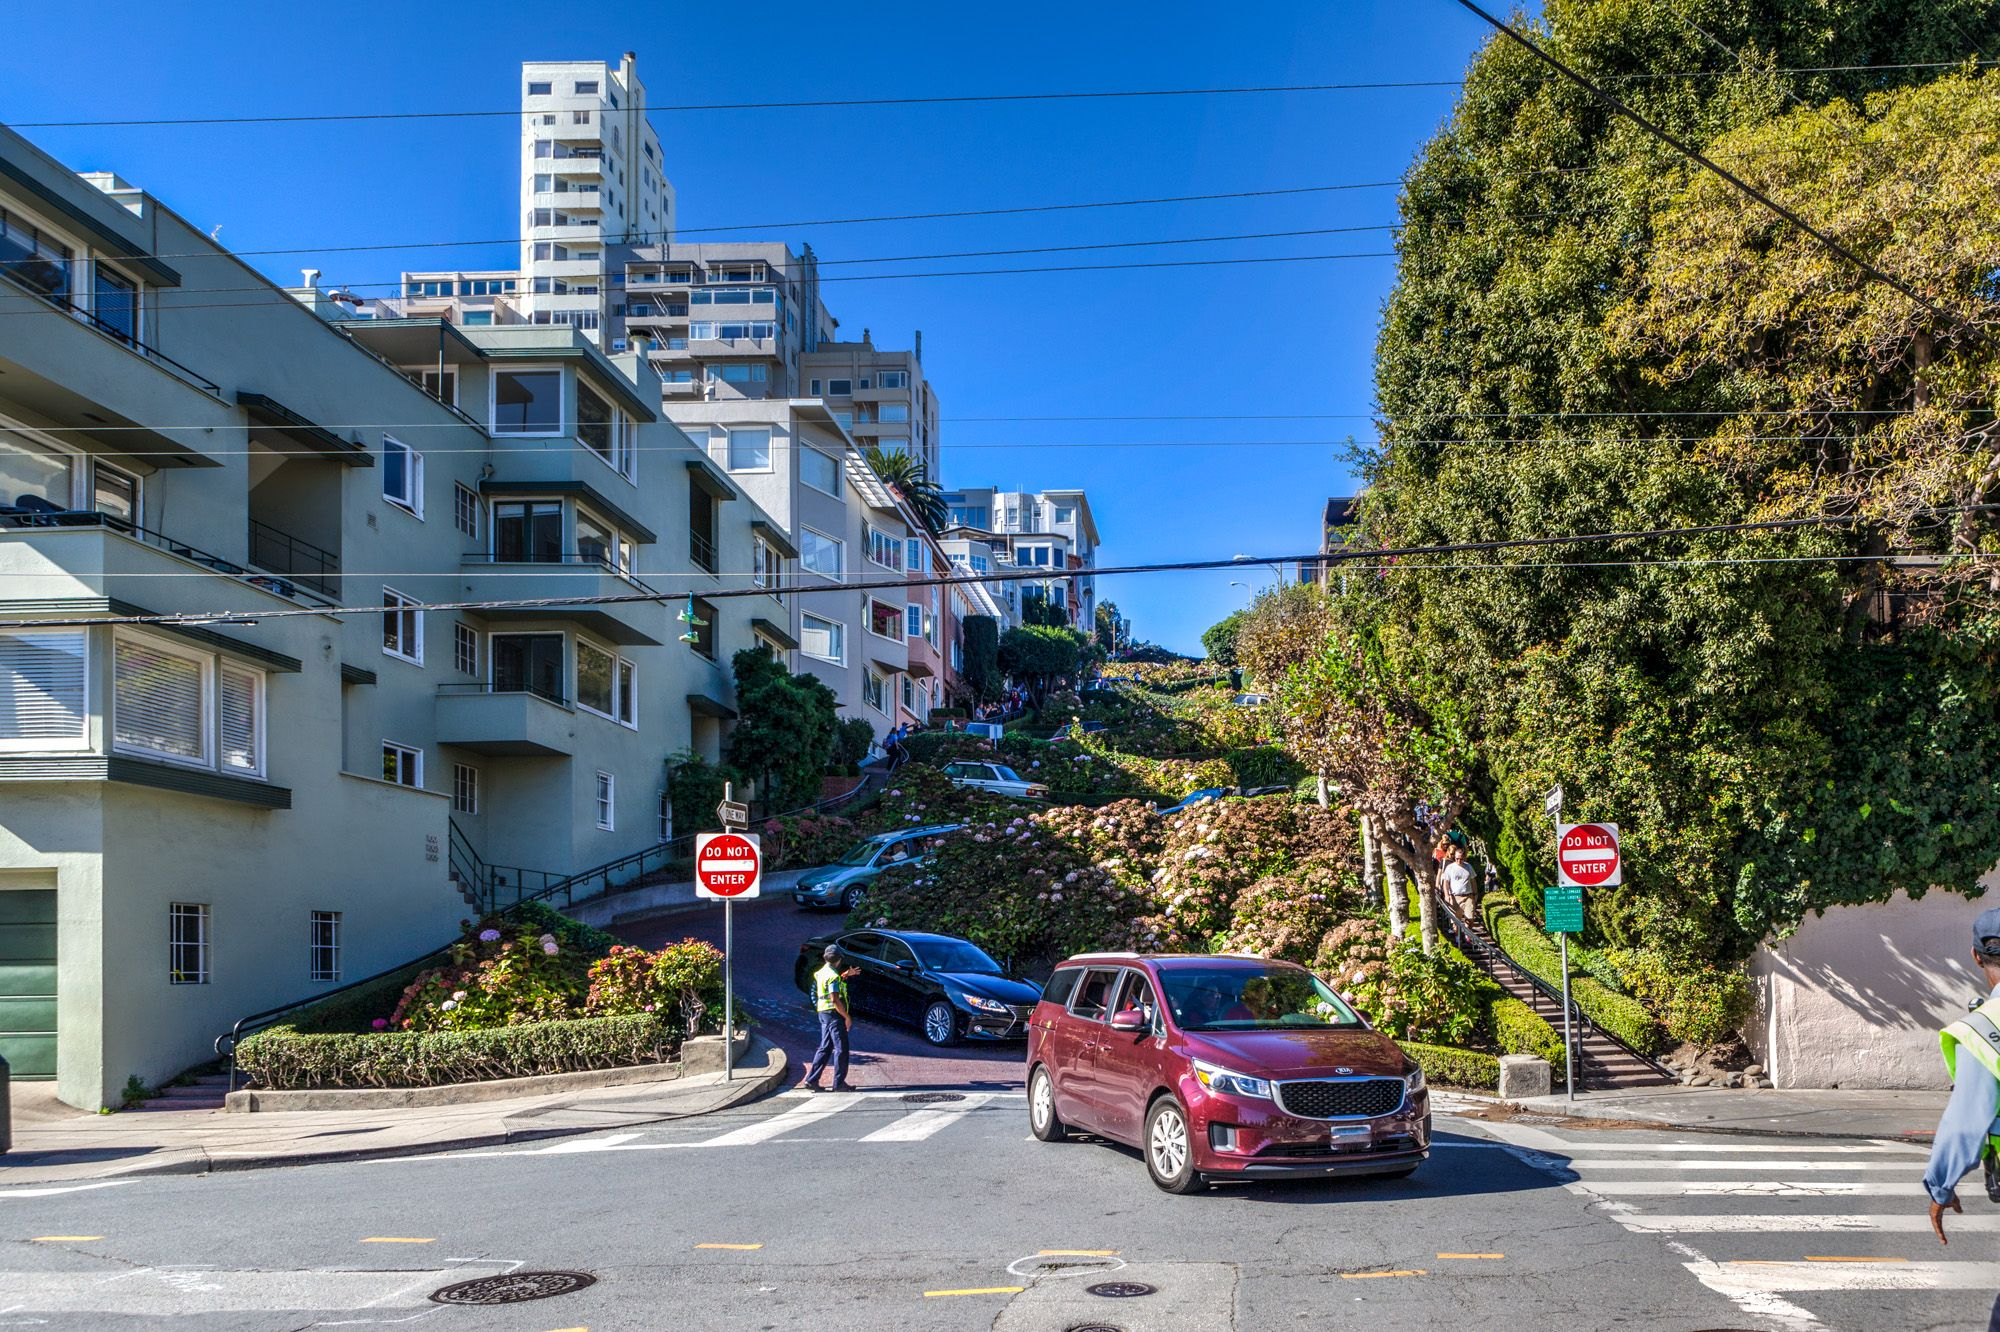 I bet you didn't know that Lombard Street is not the crookedest Street in San Francisco